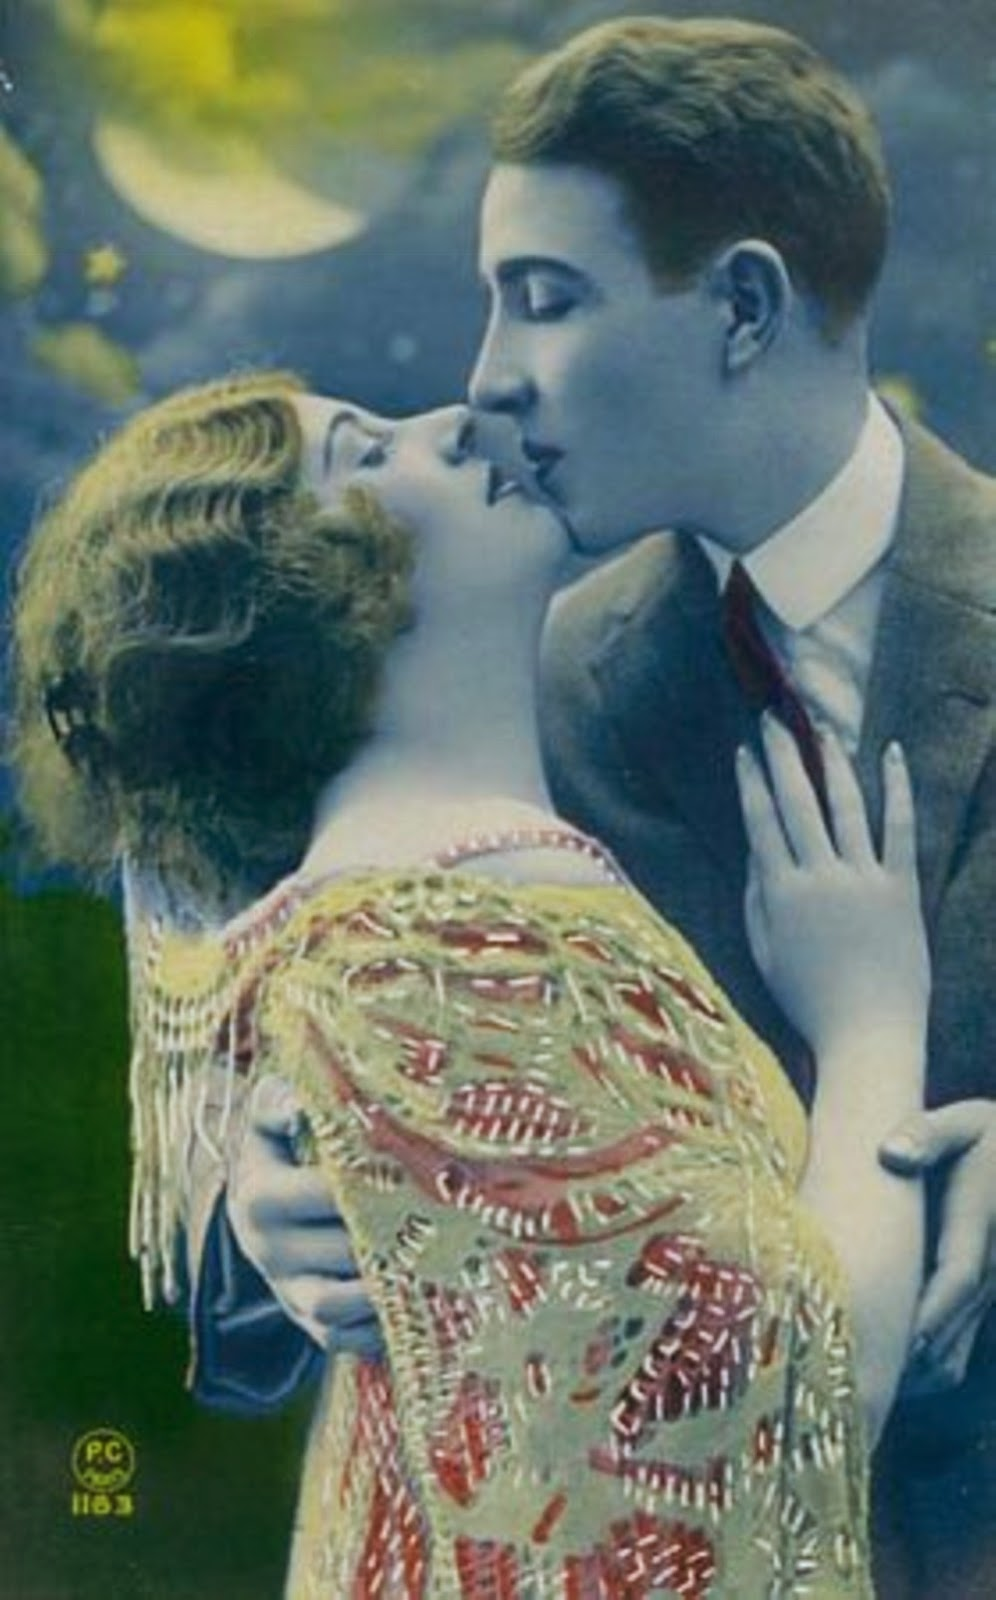 Guy friendly make up. Date make up. Vintage/retro couple kissing from the 1920s